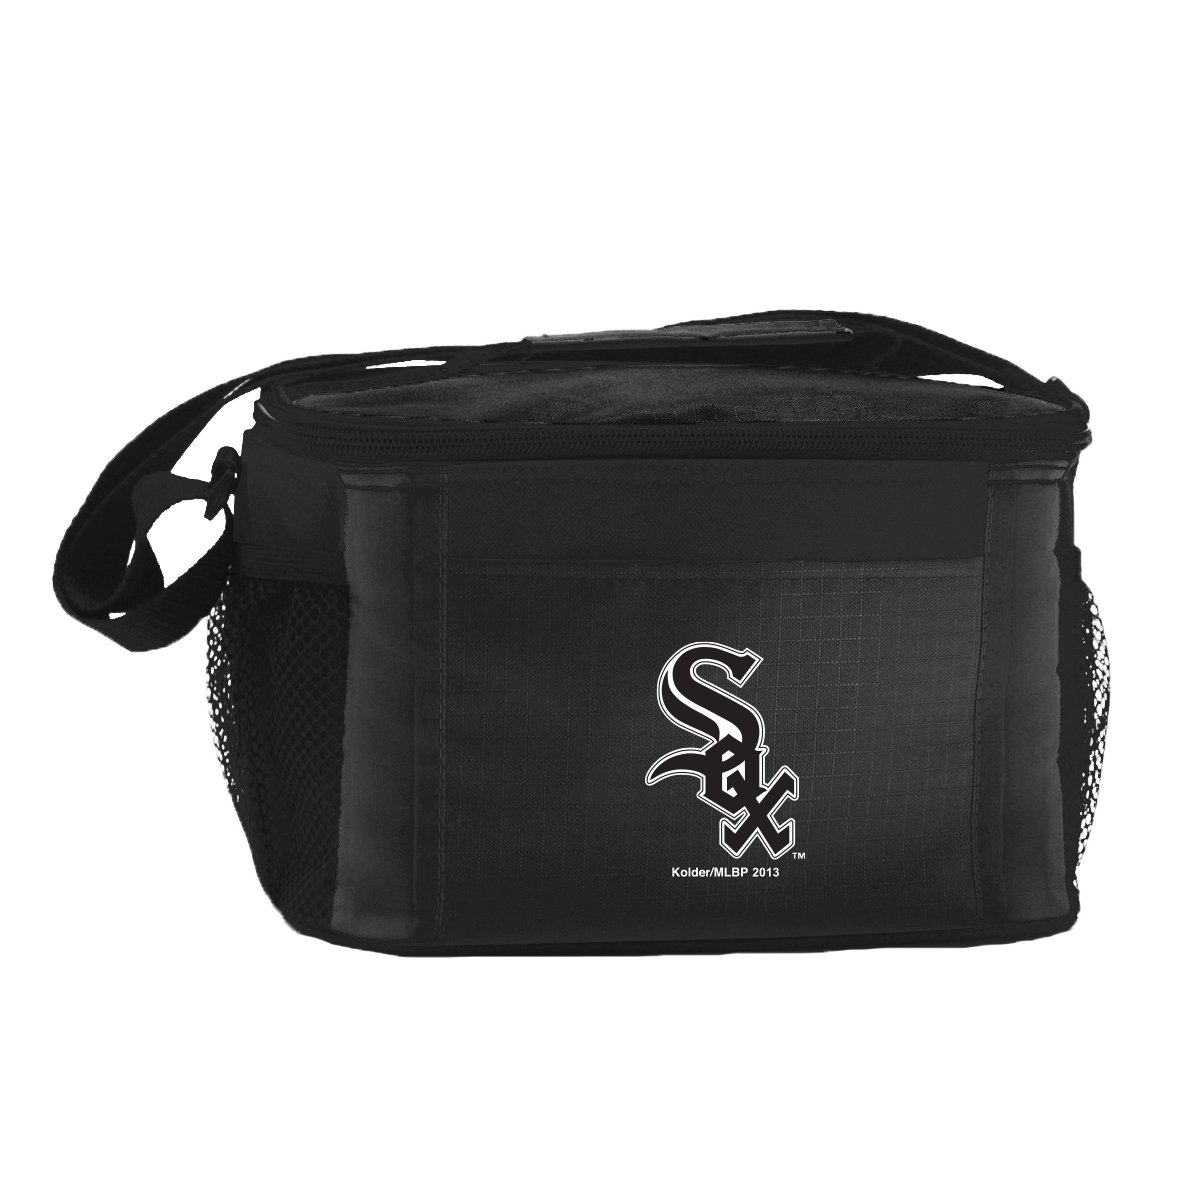 MLB Chicago White Sox Insulated Lunch Cooler Bag with Zipper Closure, Black